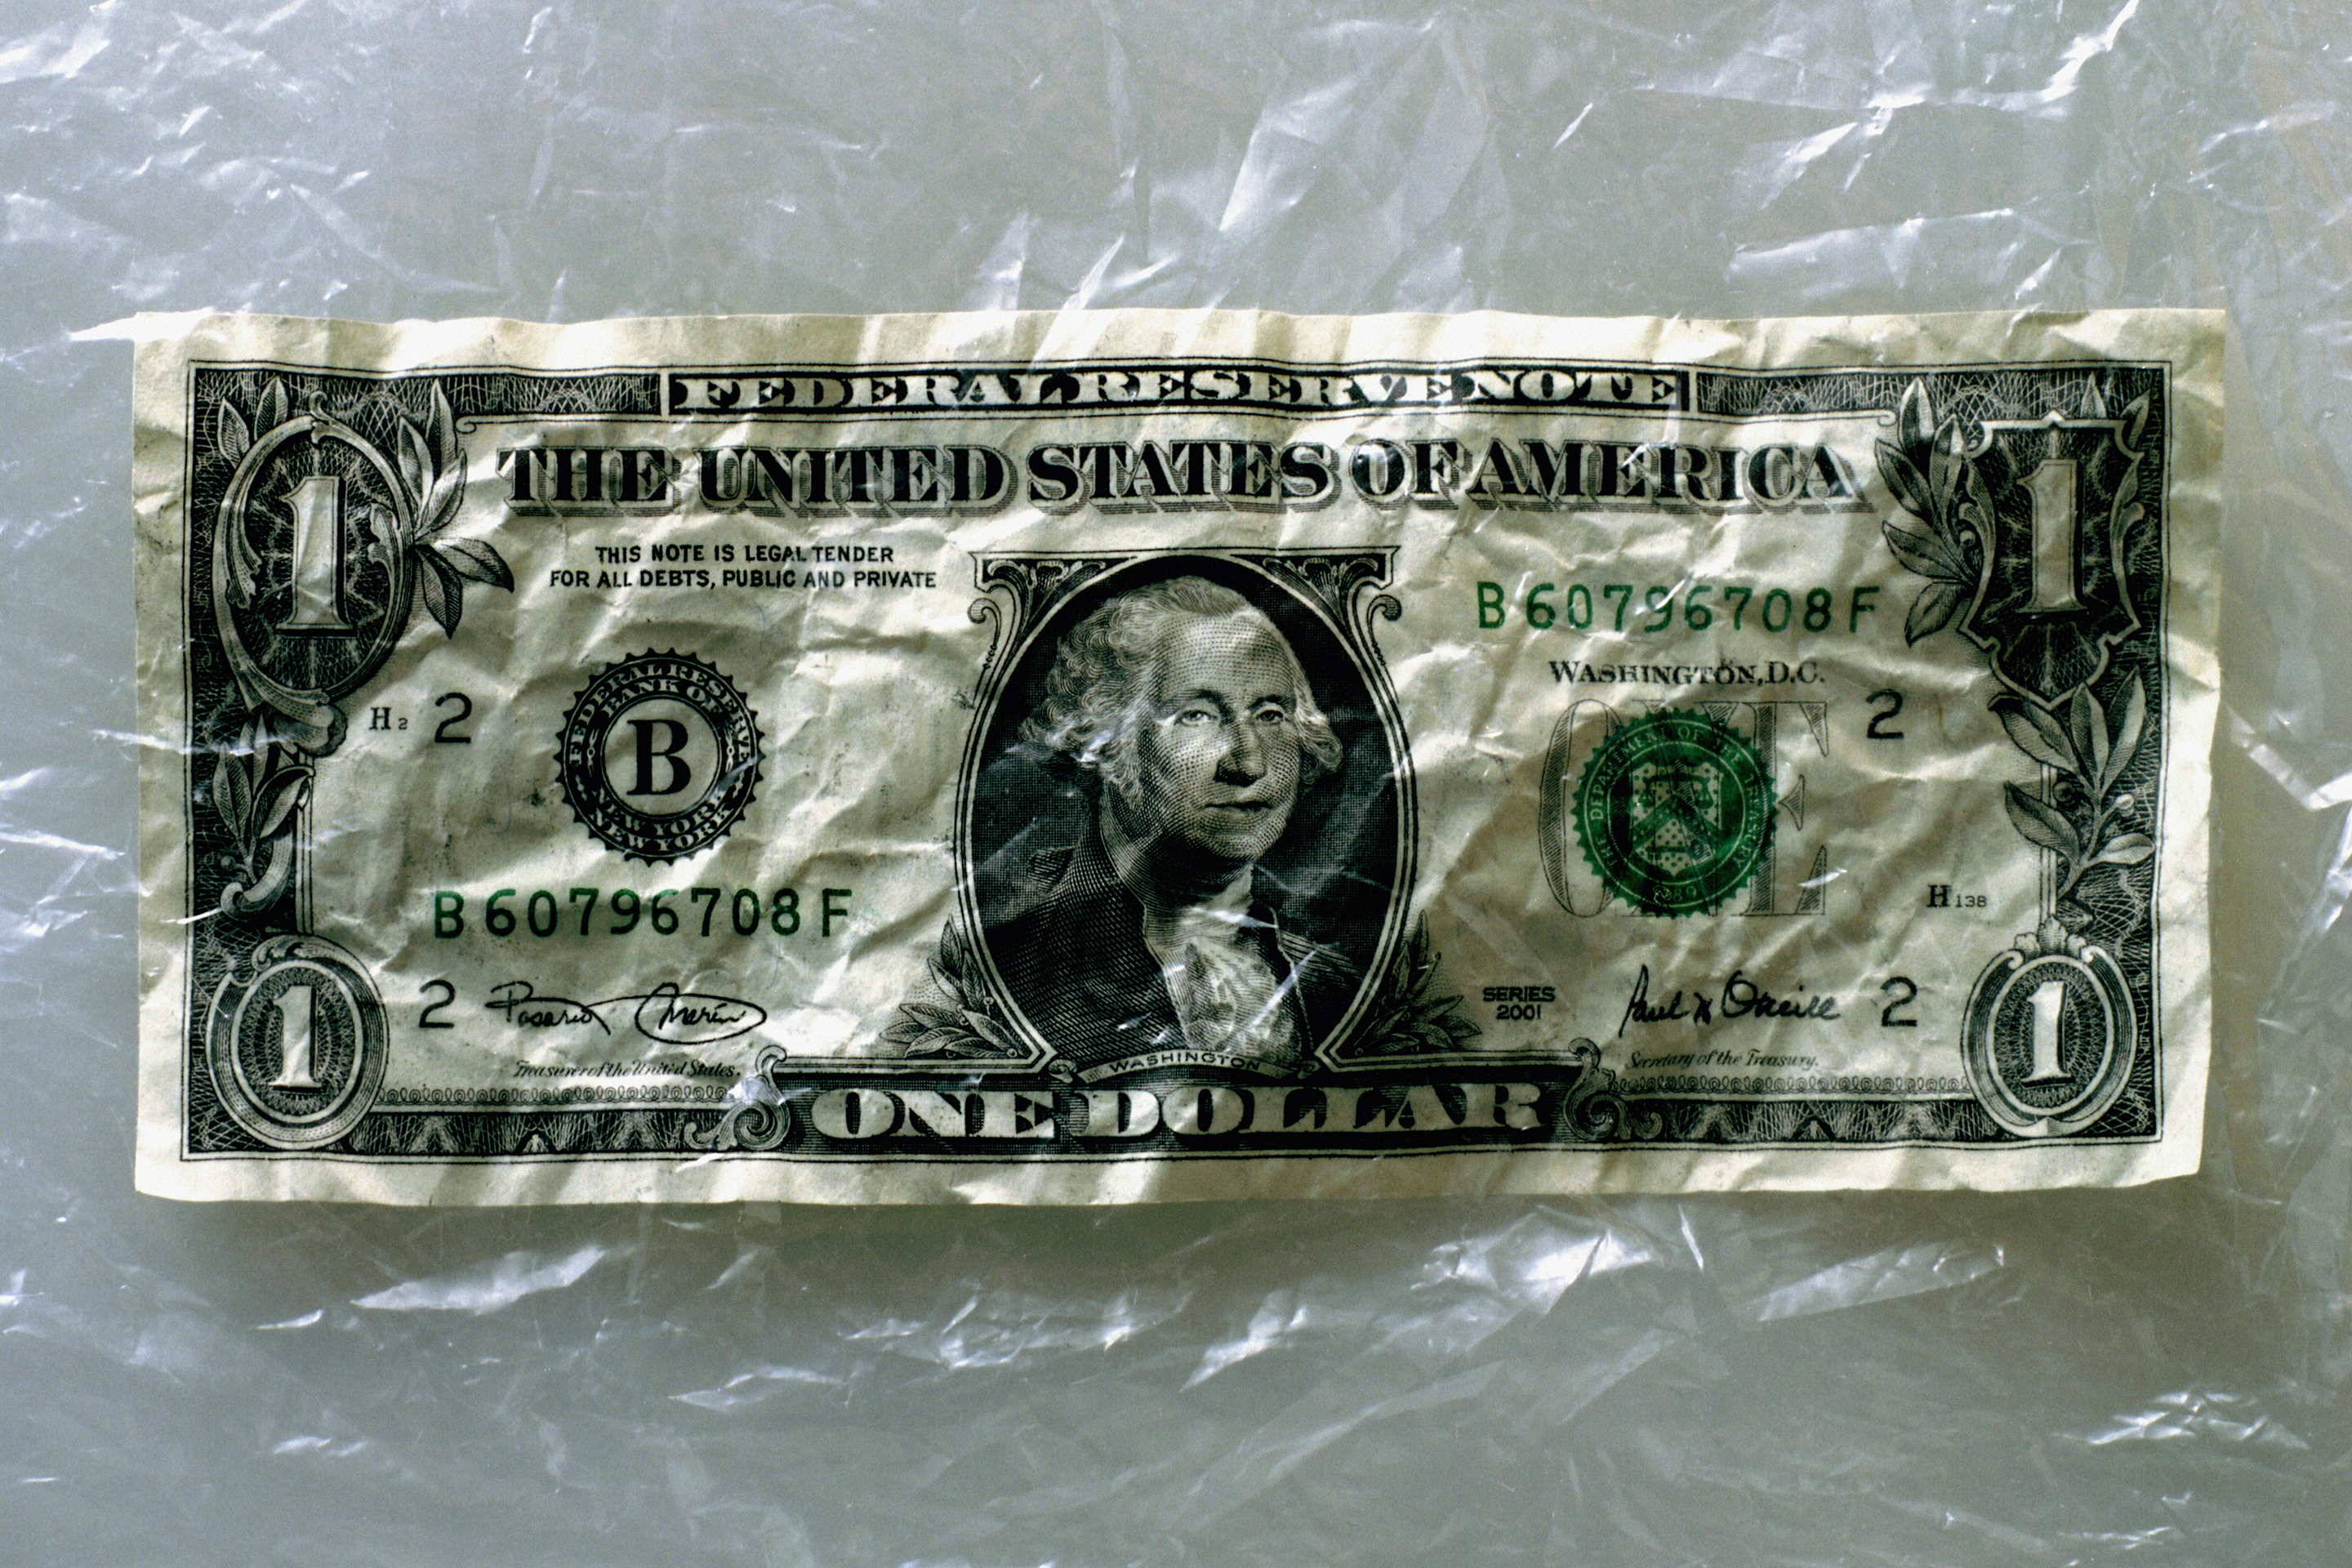 US currency: crumpled one dollar bill